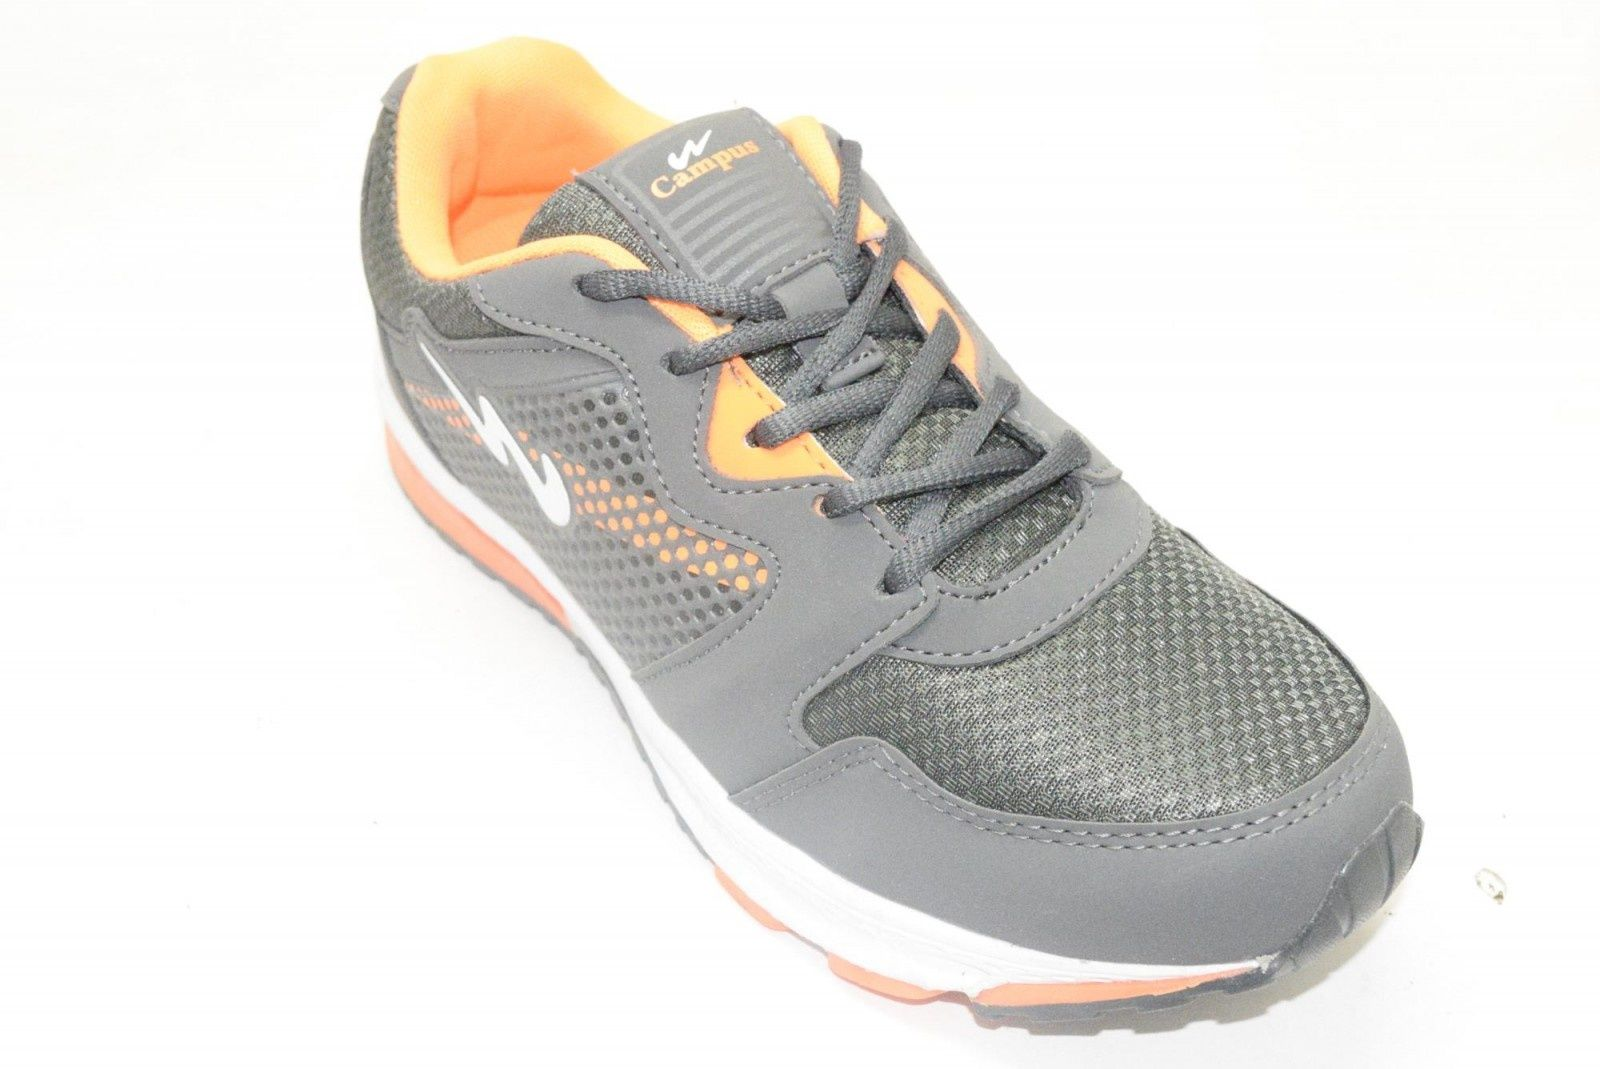 14f39822caa18b Campus Sports Shoes - Grey - Price Rs. 1099 -